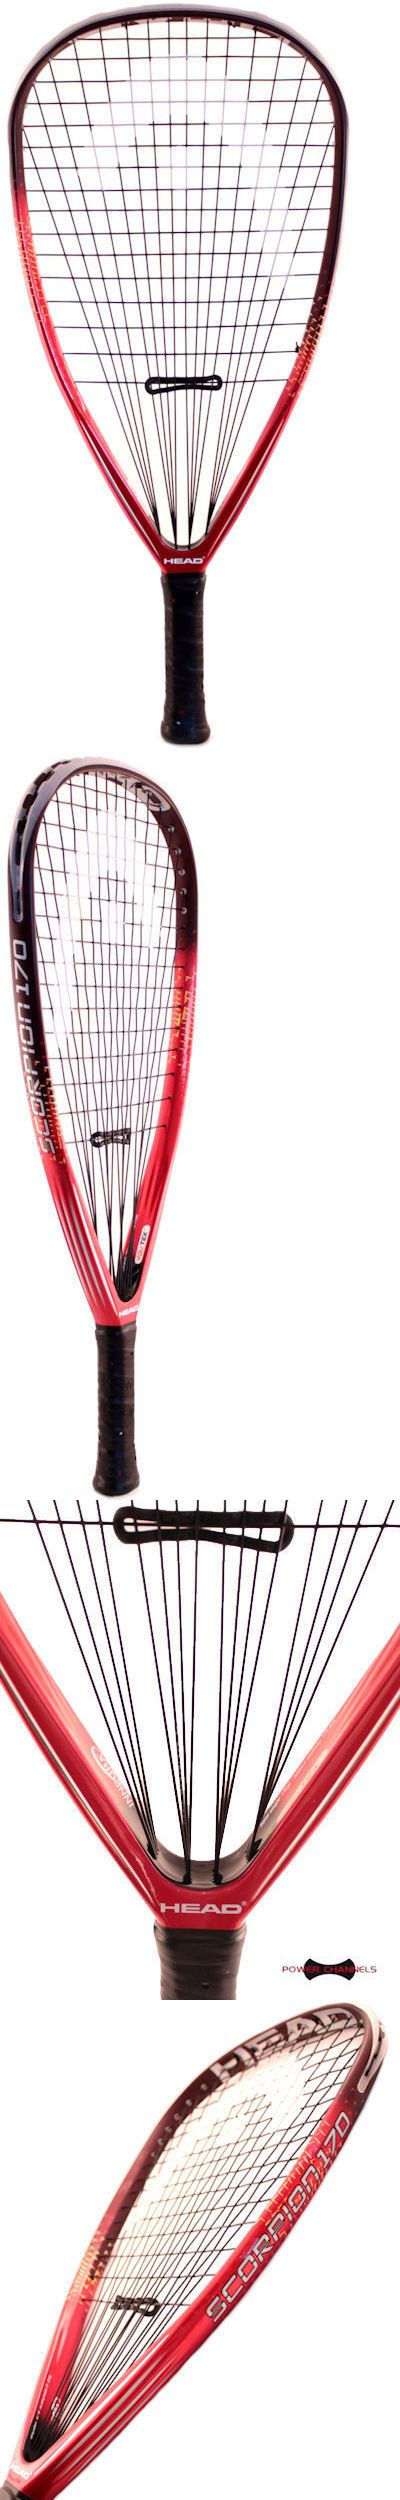 Racquetball 62168: Head Scorpion 170 Racquetball Racquet 3 5/8 Grip (Warranty From Usa) -> BUY IT NOW ONLY: $119.95 on eBay!